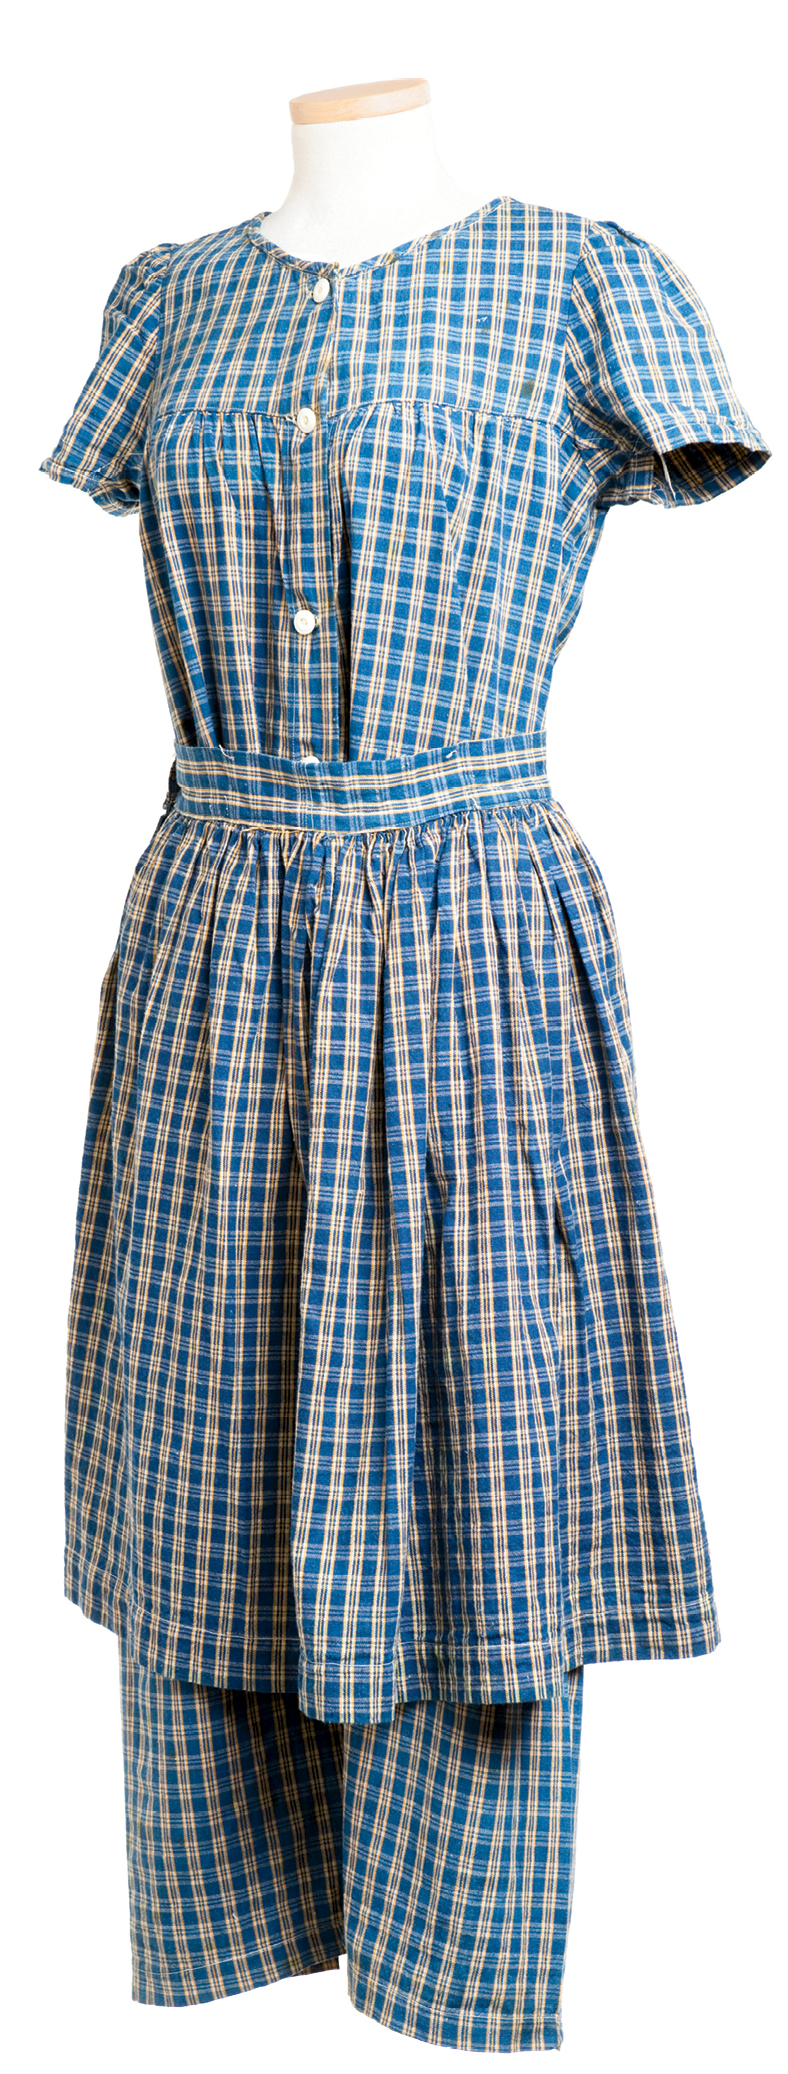 """Early 20th century - A Charleston shop called """"Clark's"""" purveyed this cotton outfit for $4."""